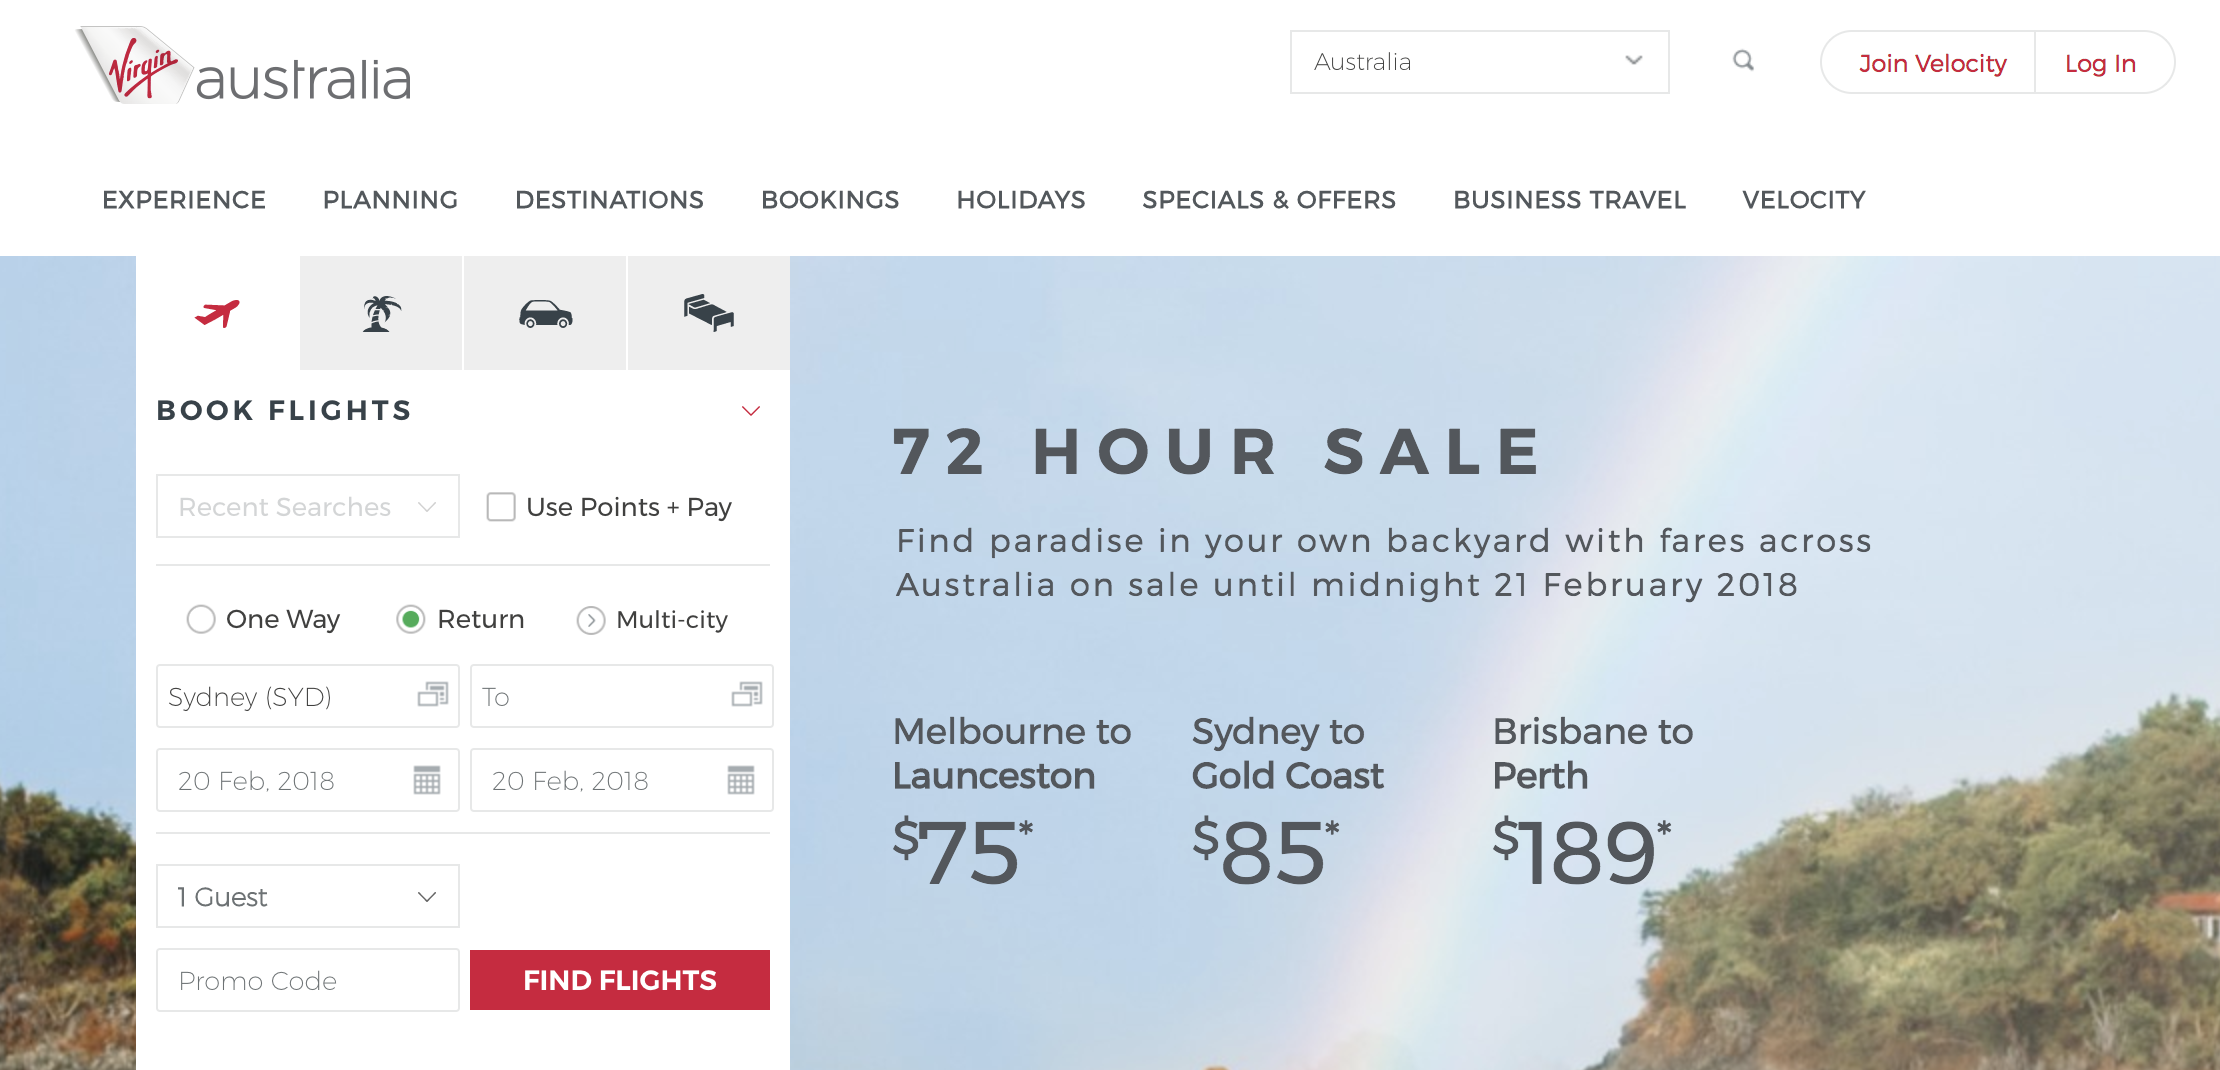 Virgin Australia website